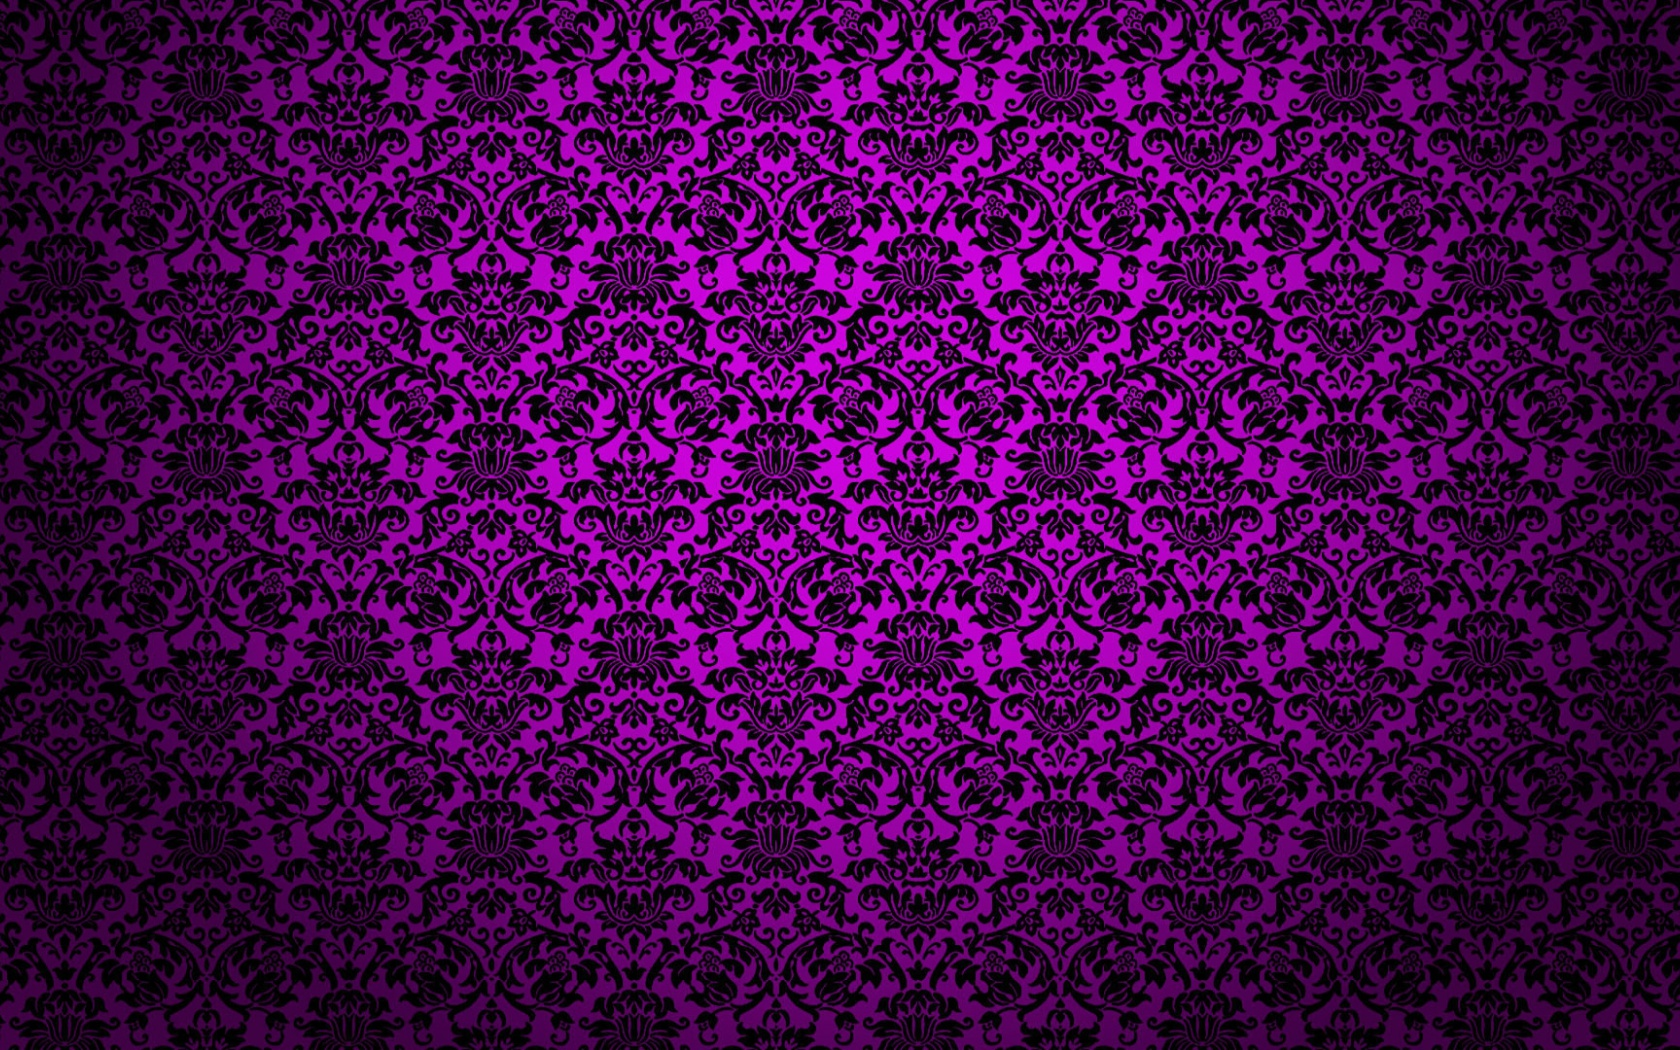 1500x500 multi color pattern purple twitter header photo